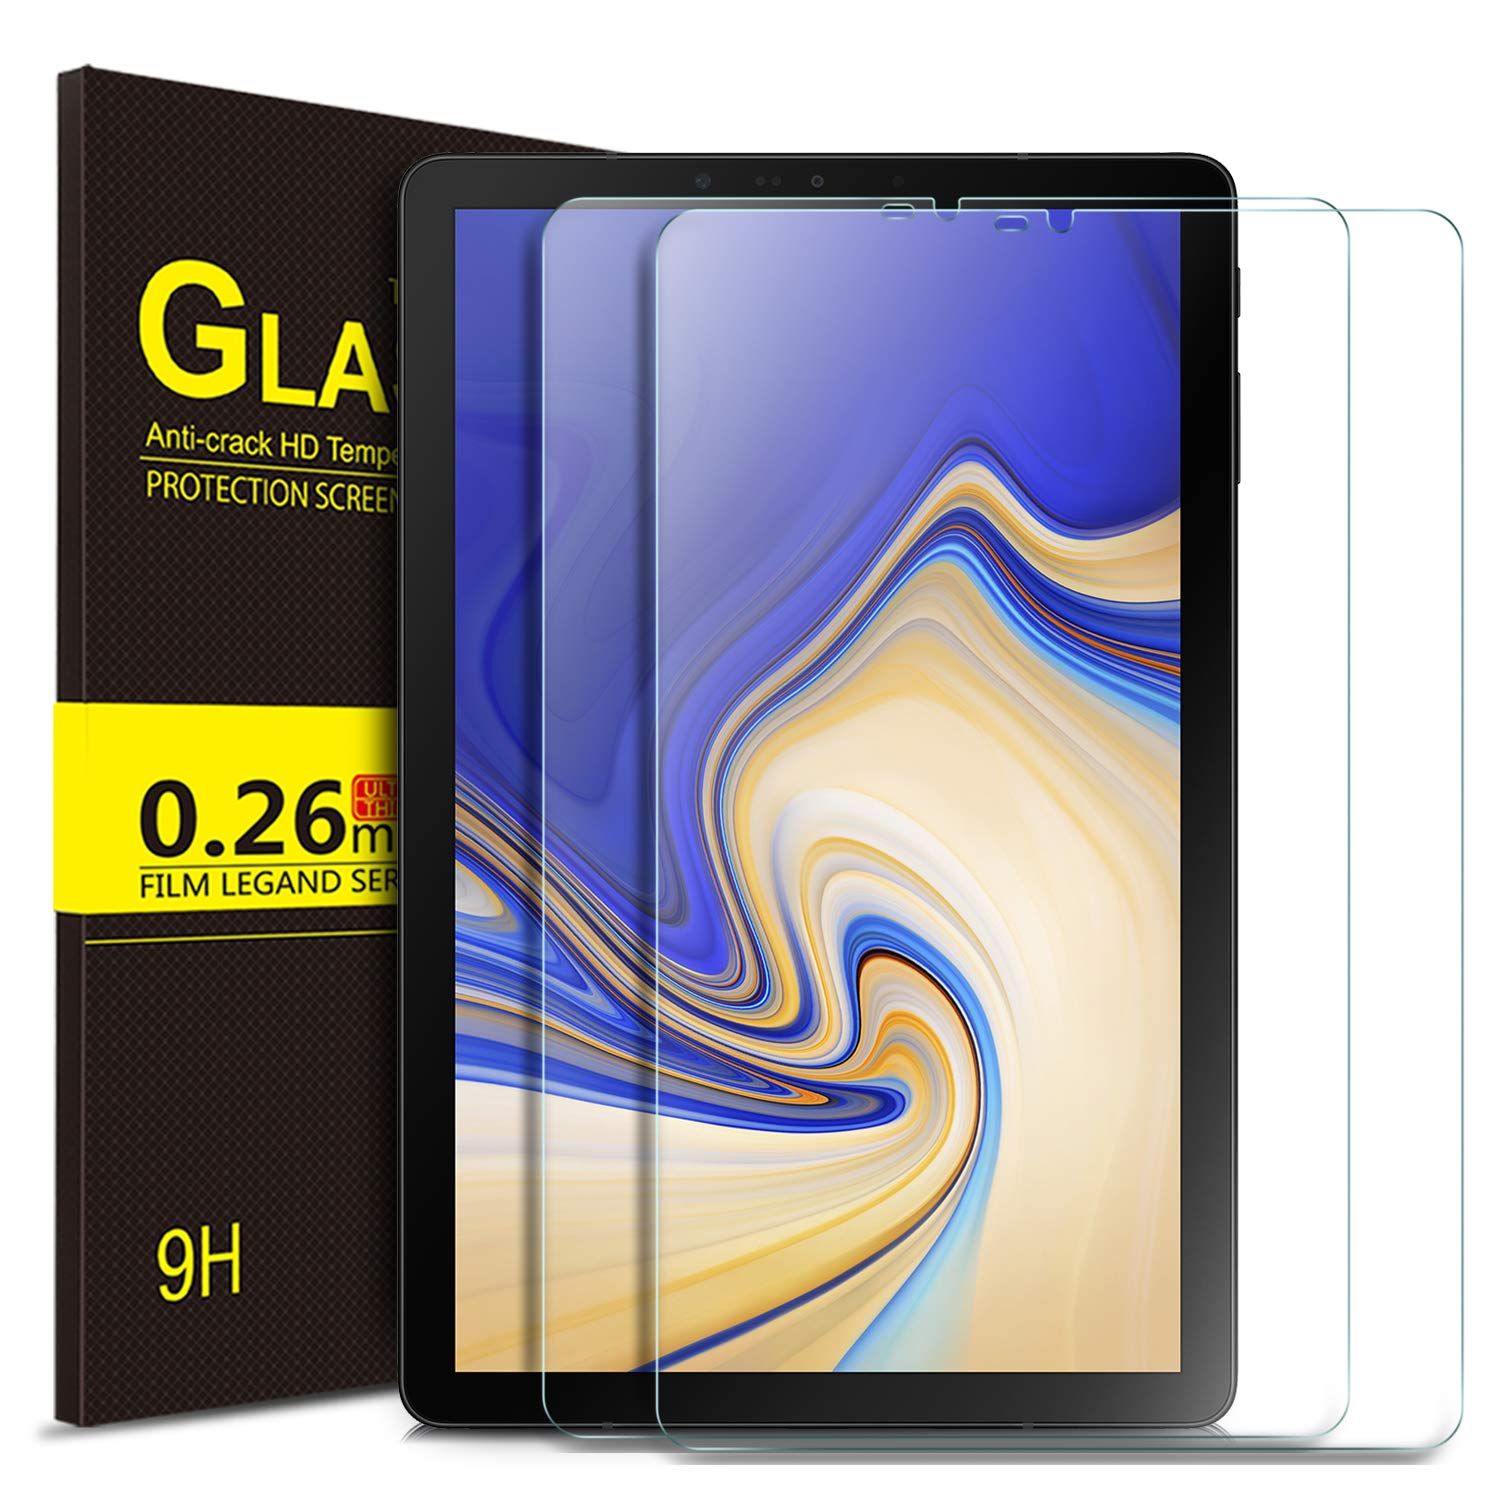 IVSO Samsung Galaxy Tab S4 10.5 Tablet Tempered-Glass Screen Protector,[Scratch-Resistant] [No-Bubble] for Samsung Galaxy Tab S4 SM-T830 Wi-Fi & SM-T835 4G LTE 10.5-inch 2018 Release Tablet (2pcs)